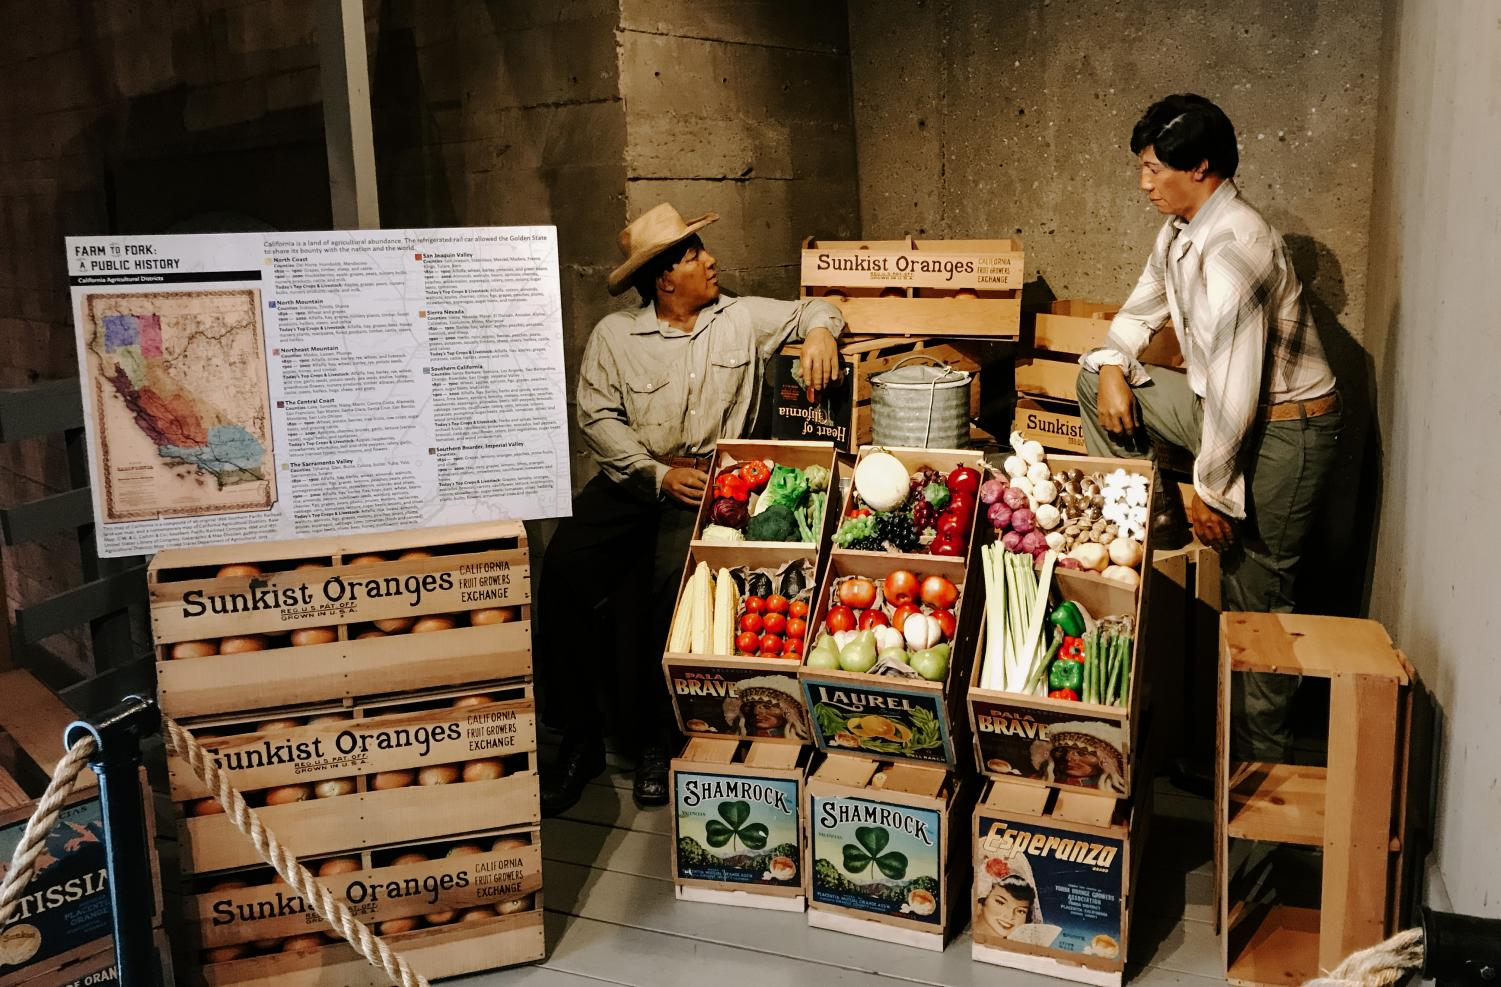 An arrangement of artifacts was placed inside a showcased refrigerator car at the California State Railroad Museum in Sacramento. Chinese immigrants who came to California transformed the land and produced a variety of fruits and vegetables.